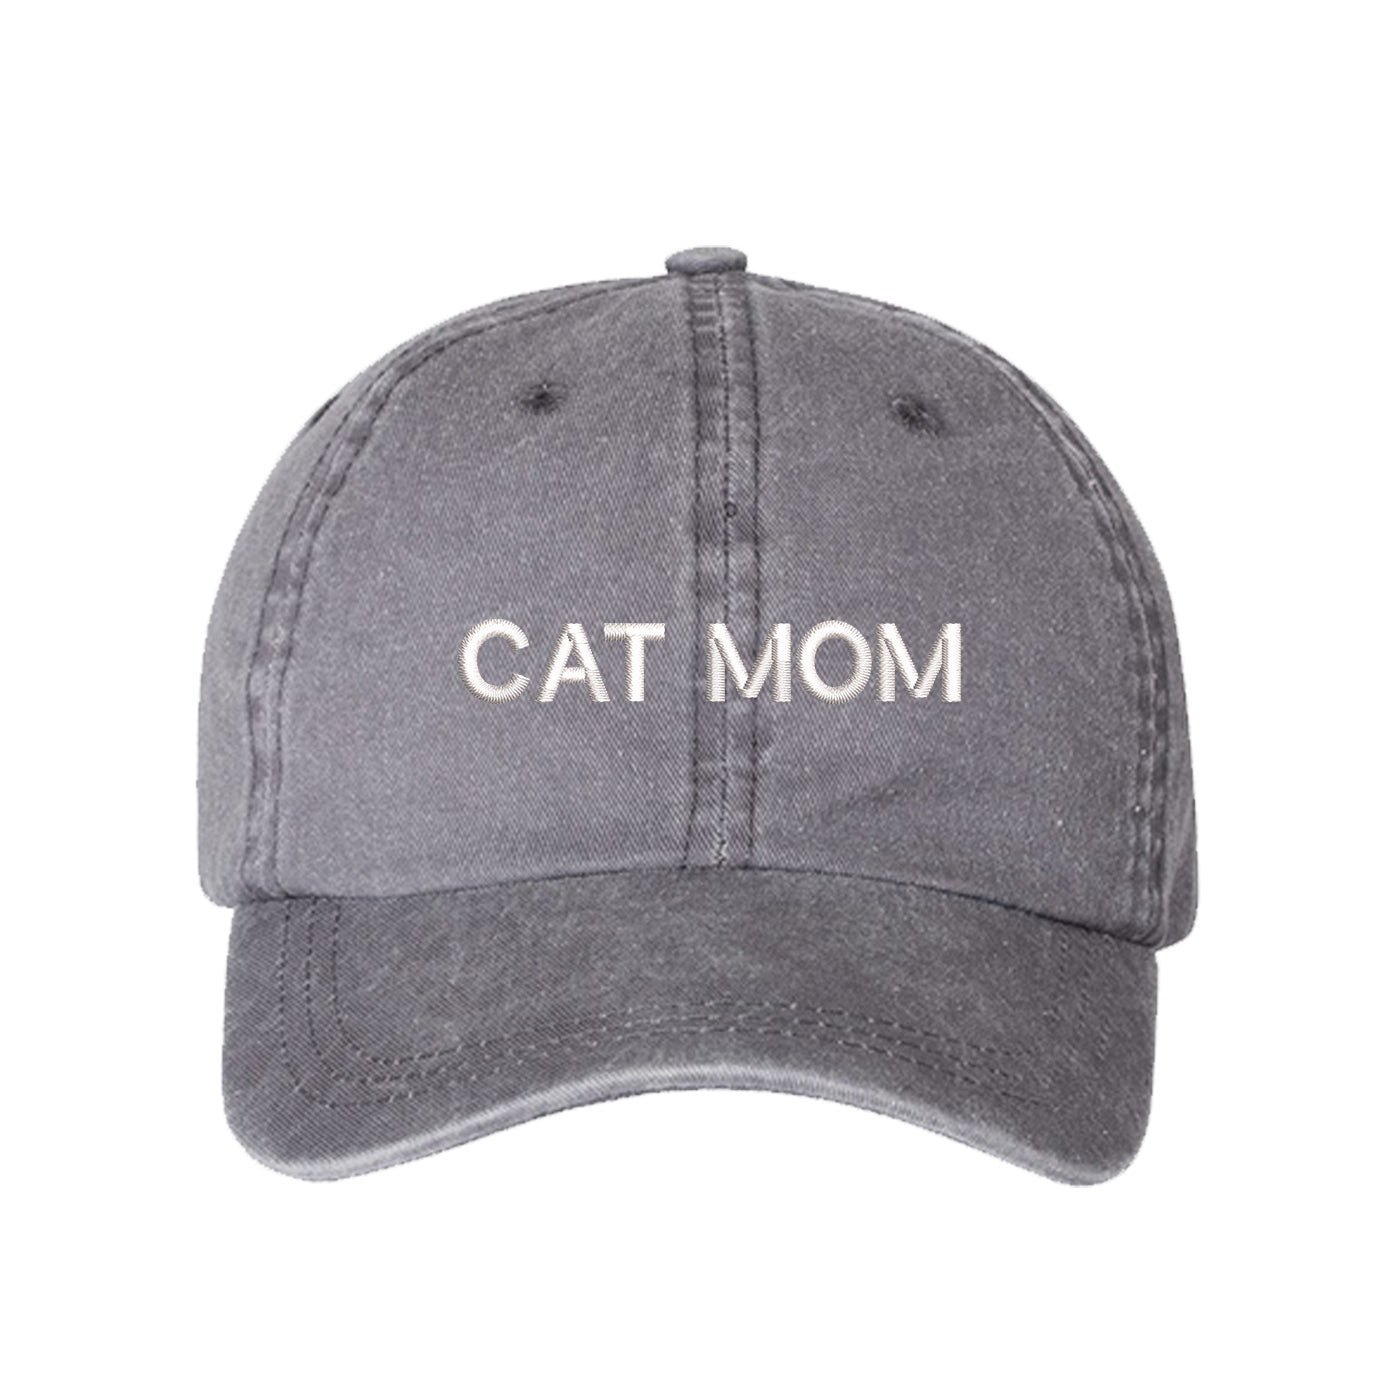 Cat Mom Washed Baseball Hat, Cat Mom Hat, Embroidered Dad Hat, Cat Mom, Cat Lover Hats, Cat Hats, DSY Lifestyle Hat, Gray Washed Dad Hat